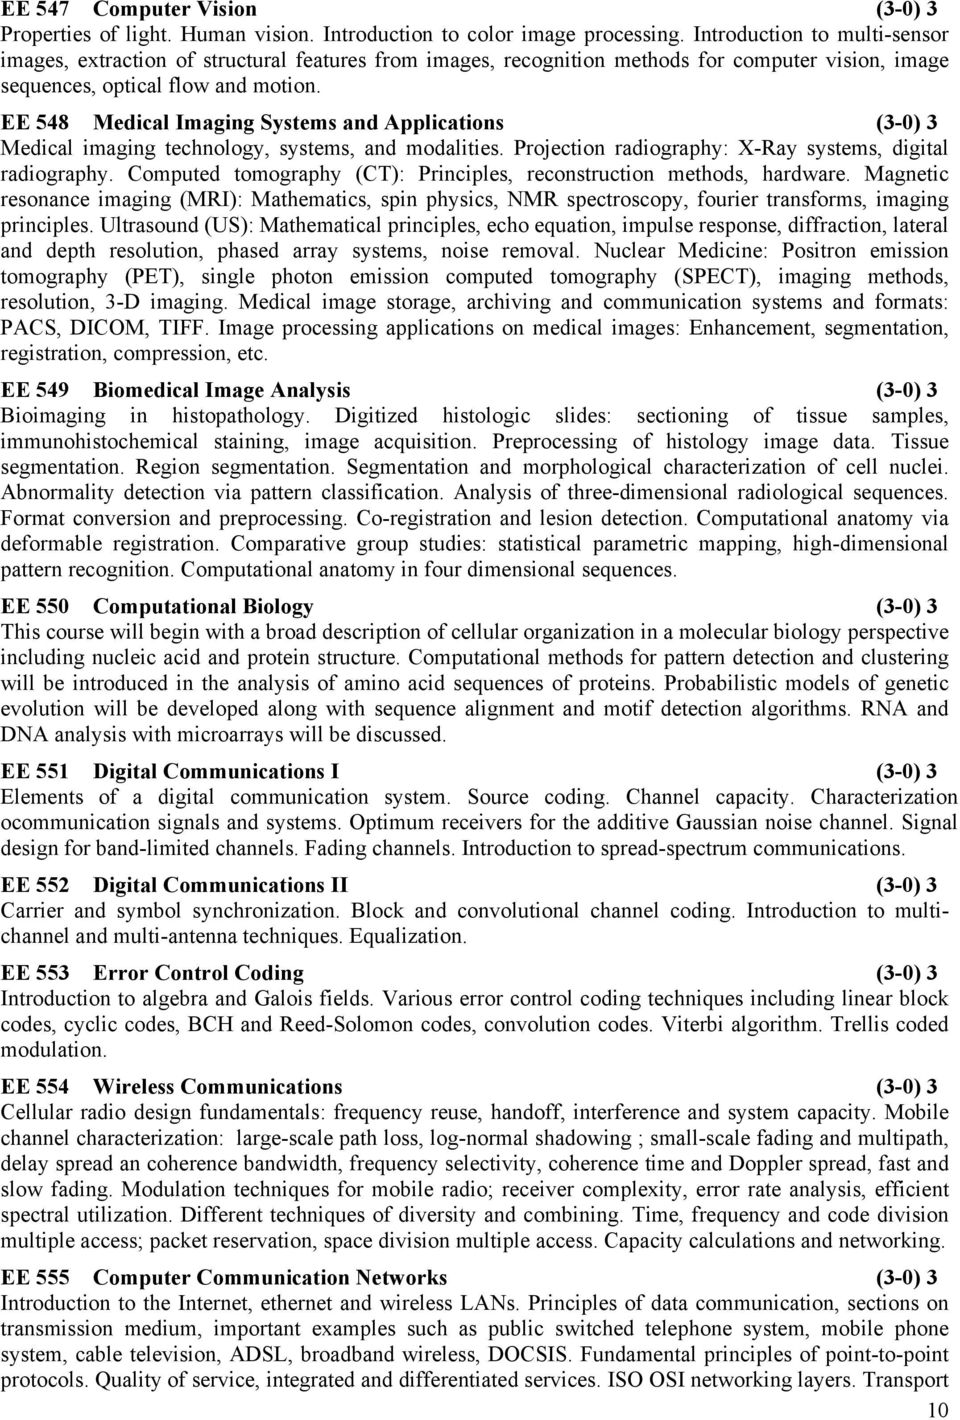 EE 548 Medical Imaging Systems and Applications (3-0) 3 Medical imaging technology, systems, and modalities. Projection radiography: X-Ray systems, digital radiography.